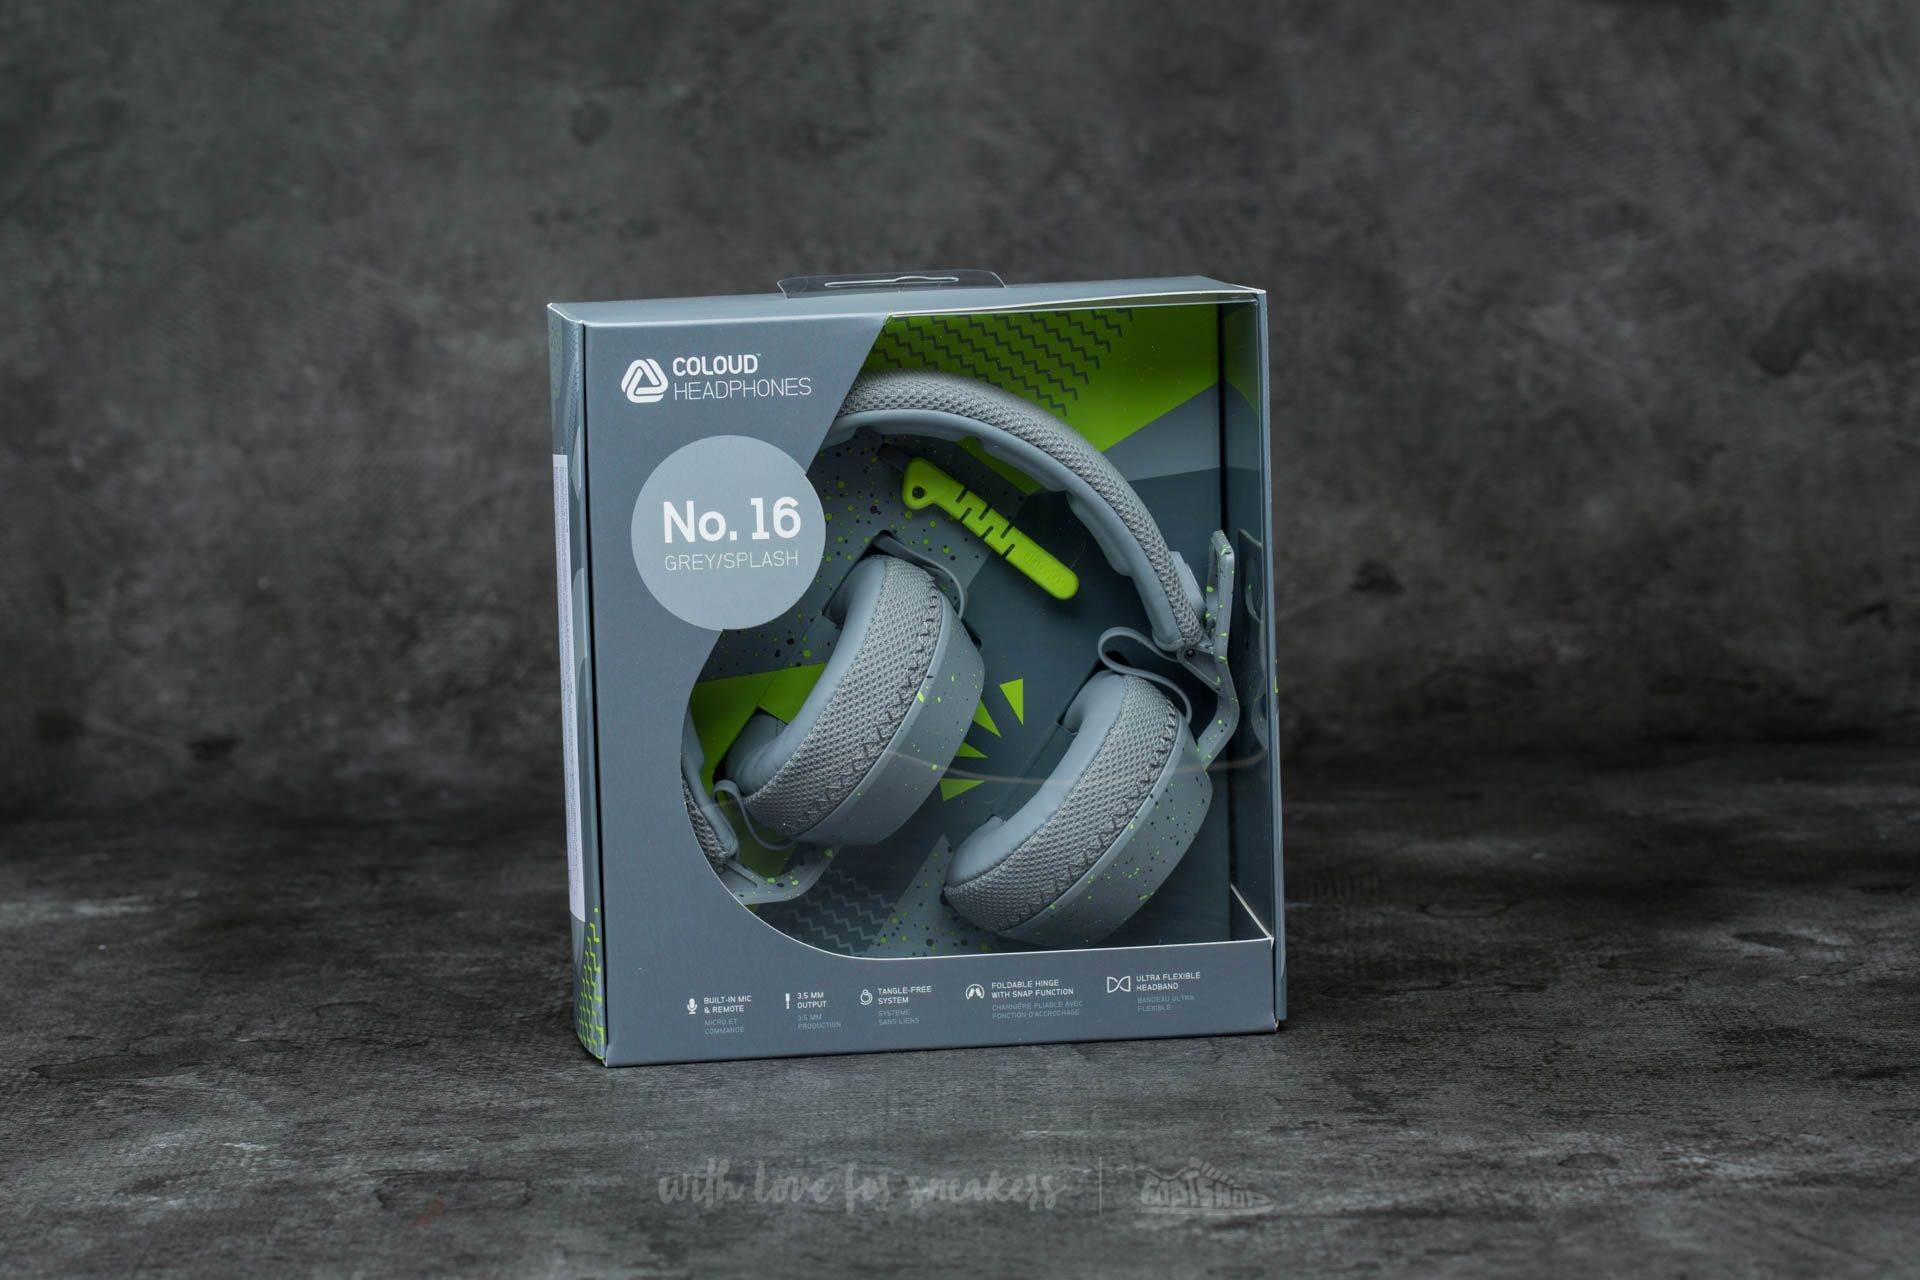 Coloud No. 16 Headphones Grey-Splash